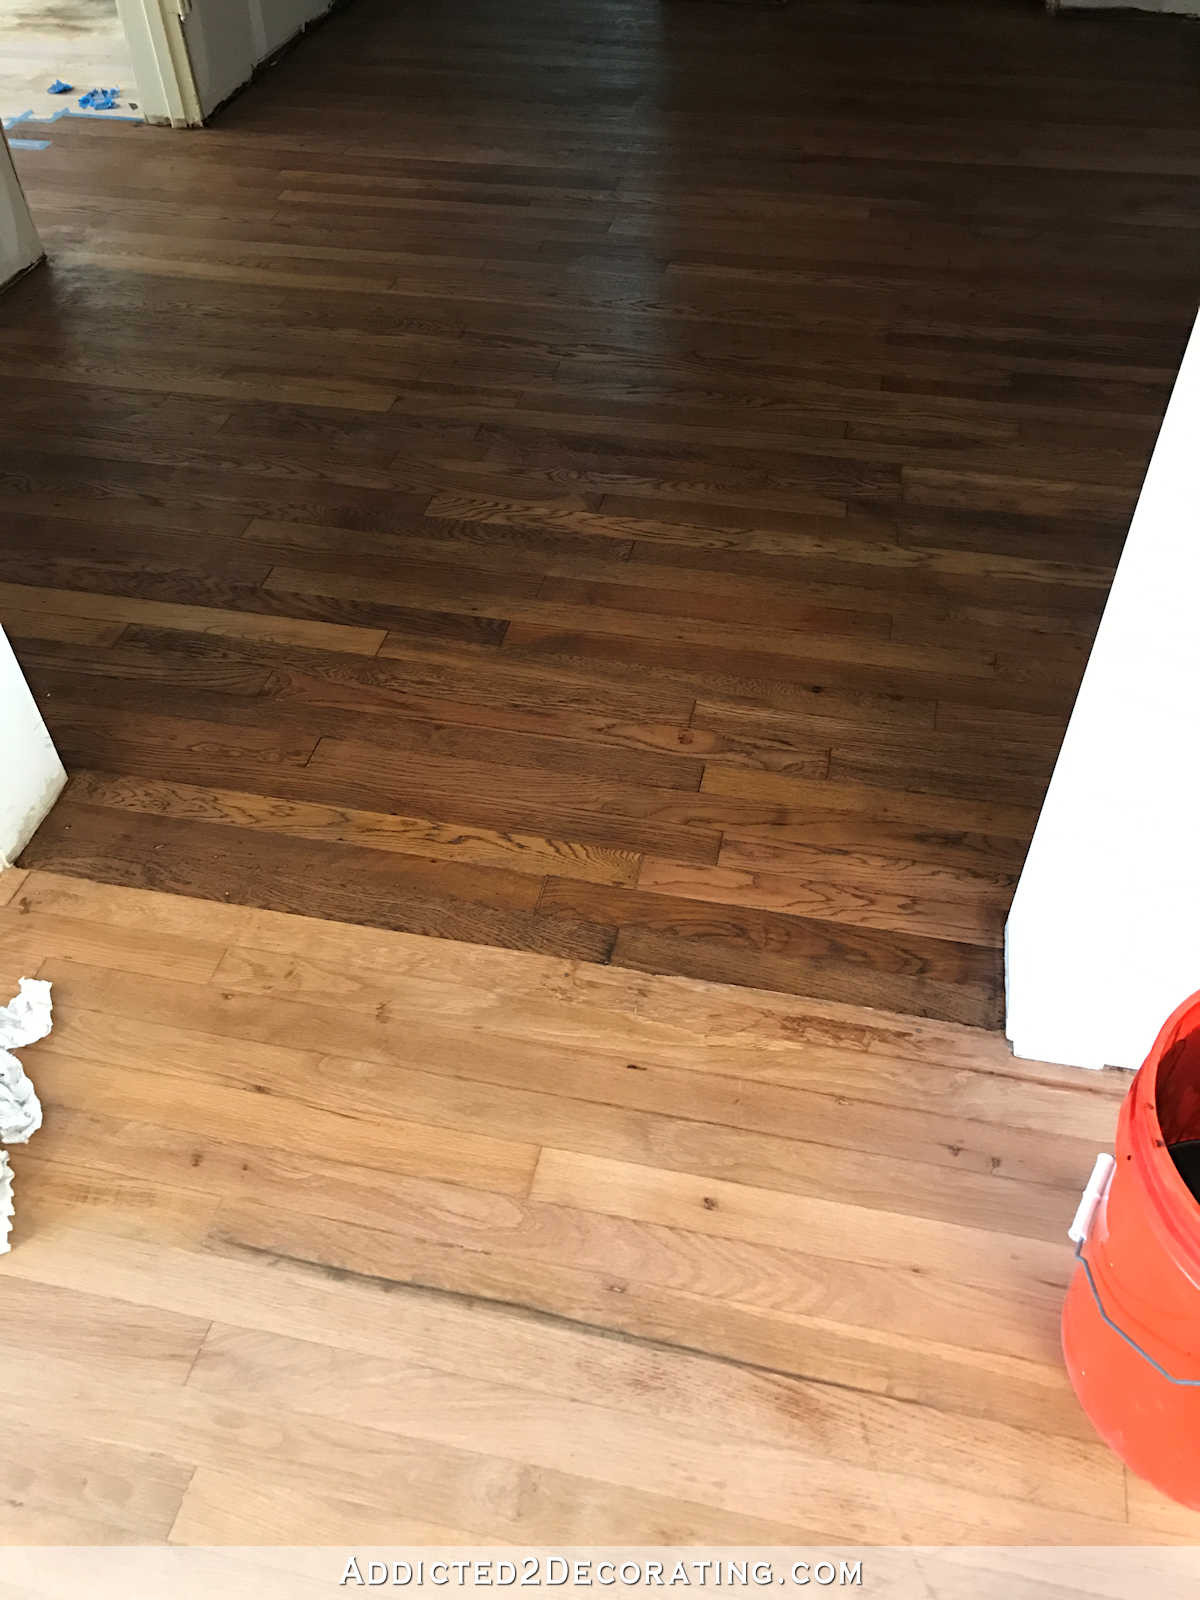 hardwood floor stain colors for oak of adventures in staining my red oak hardwood floors products process for staining red oak hardwood floors 2 tape off one section at a time for